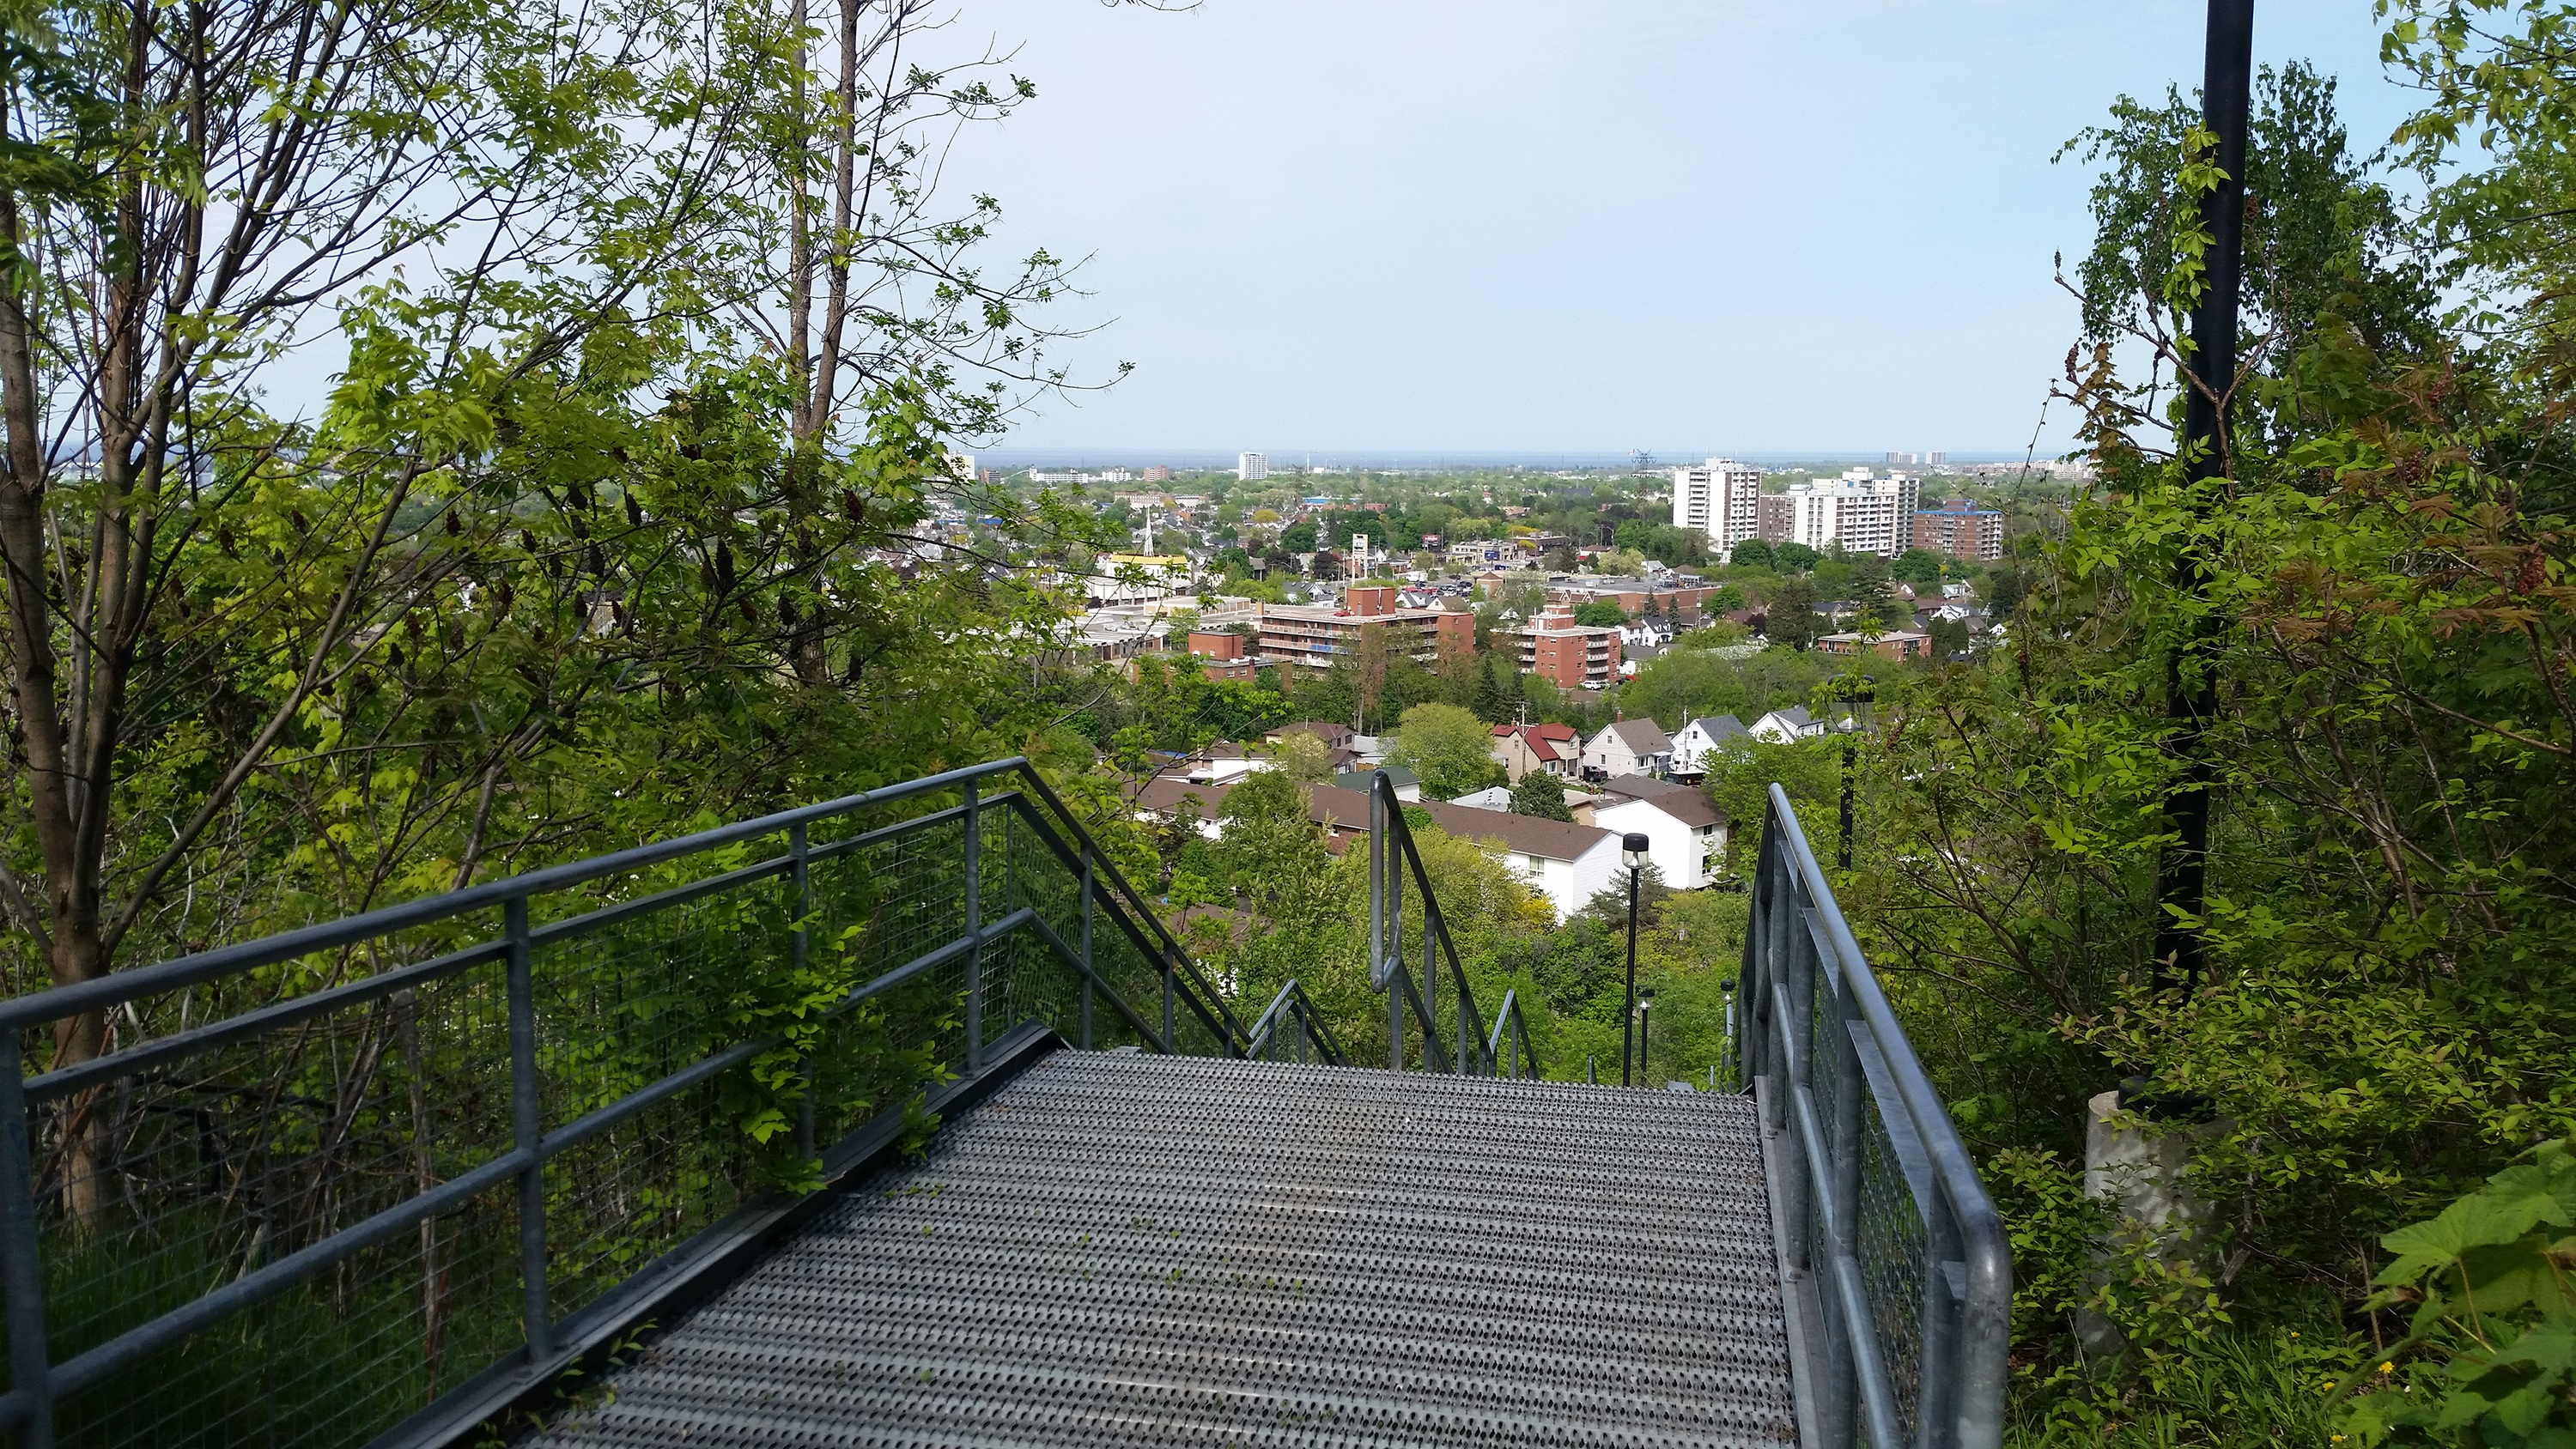 Top of the Kenilworth Stairs Lower Section